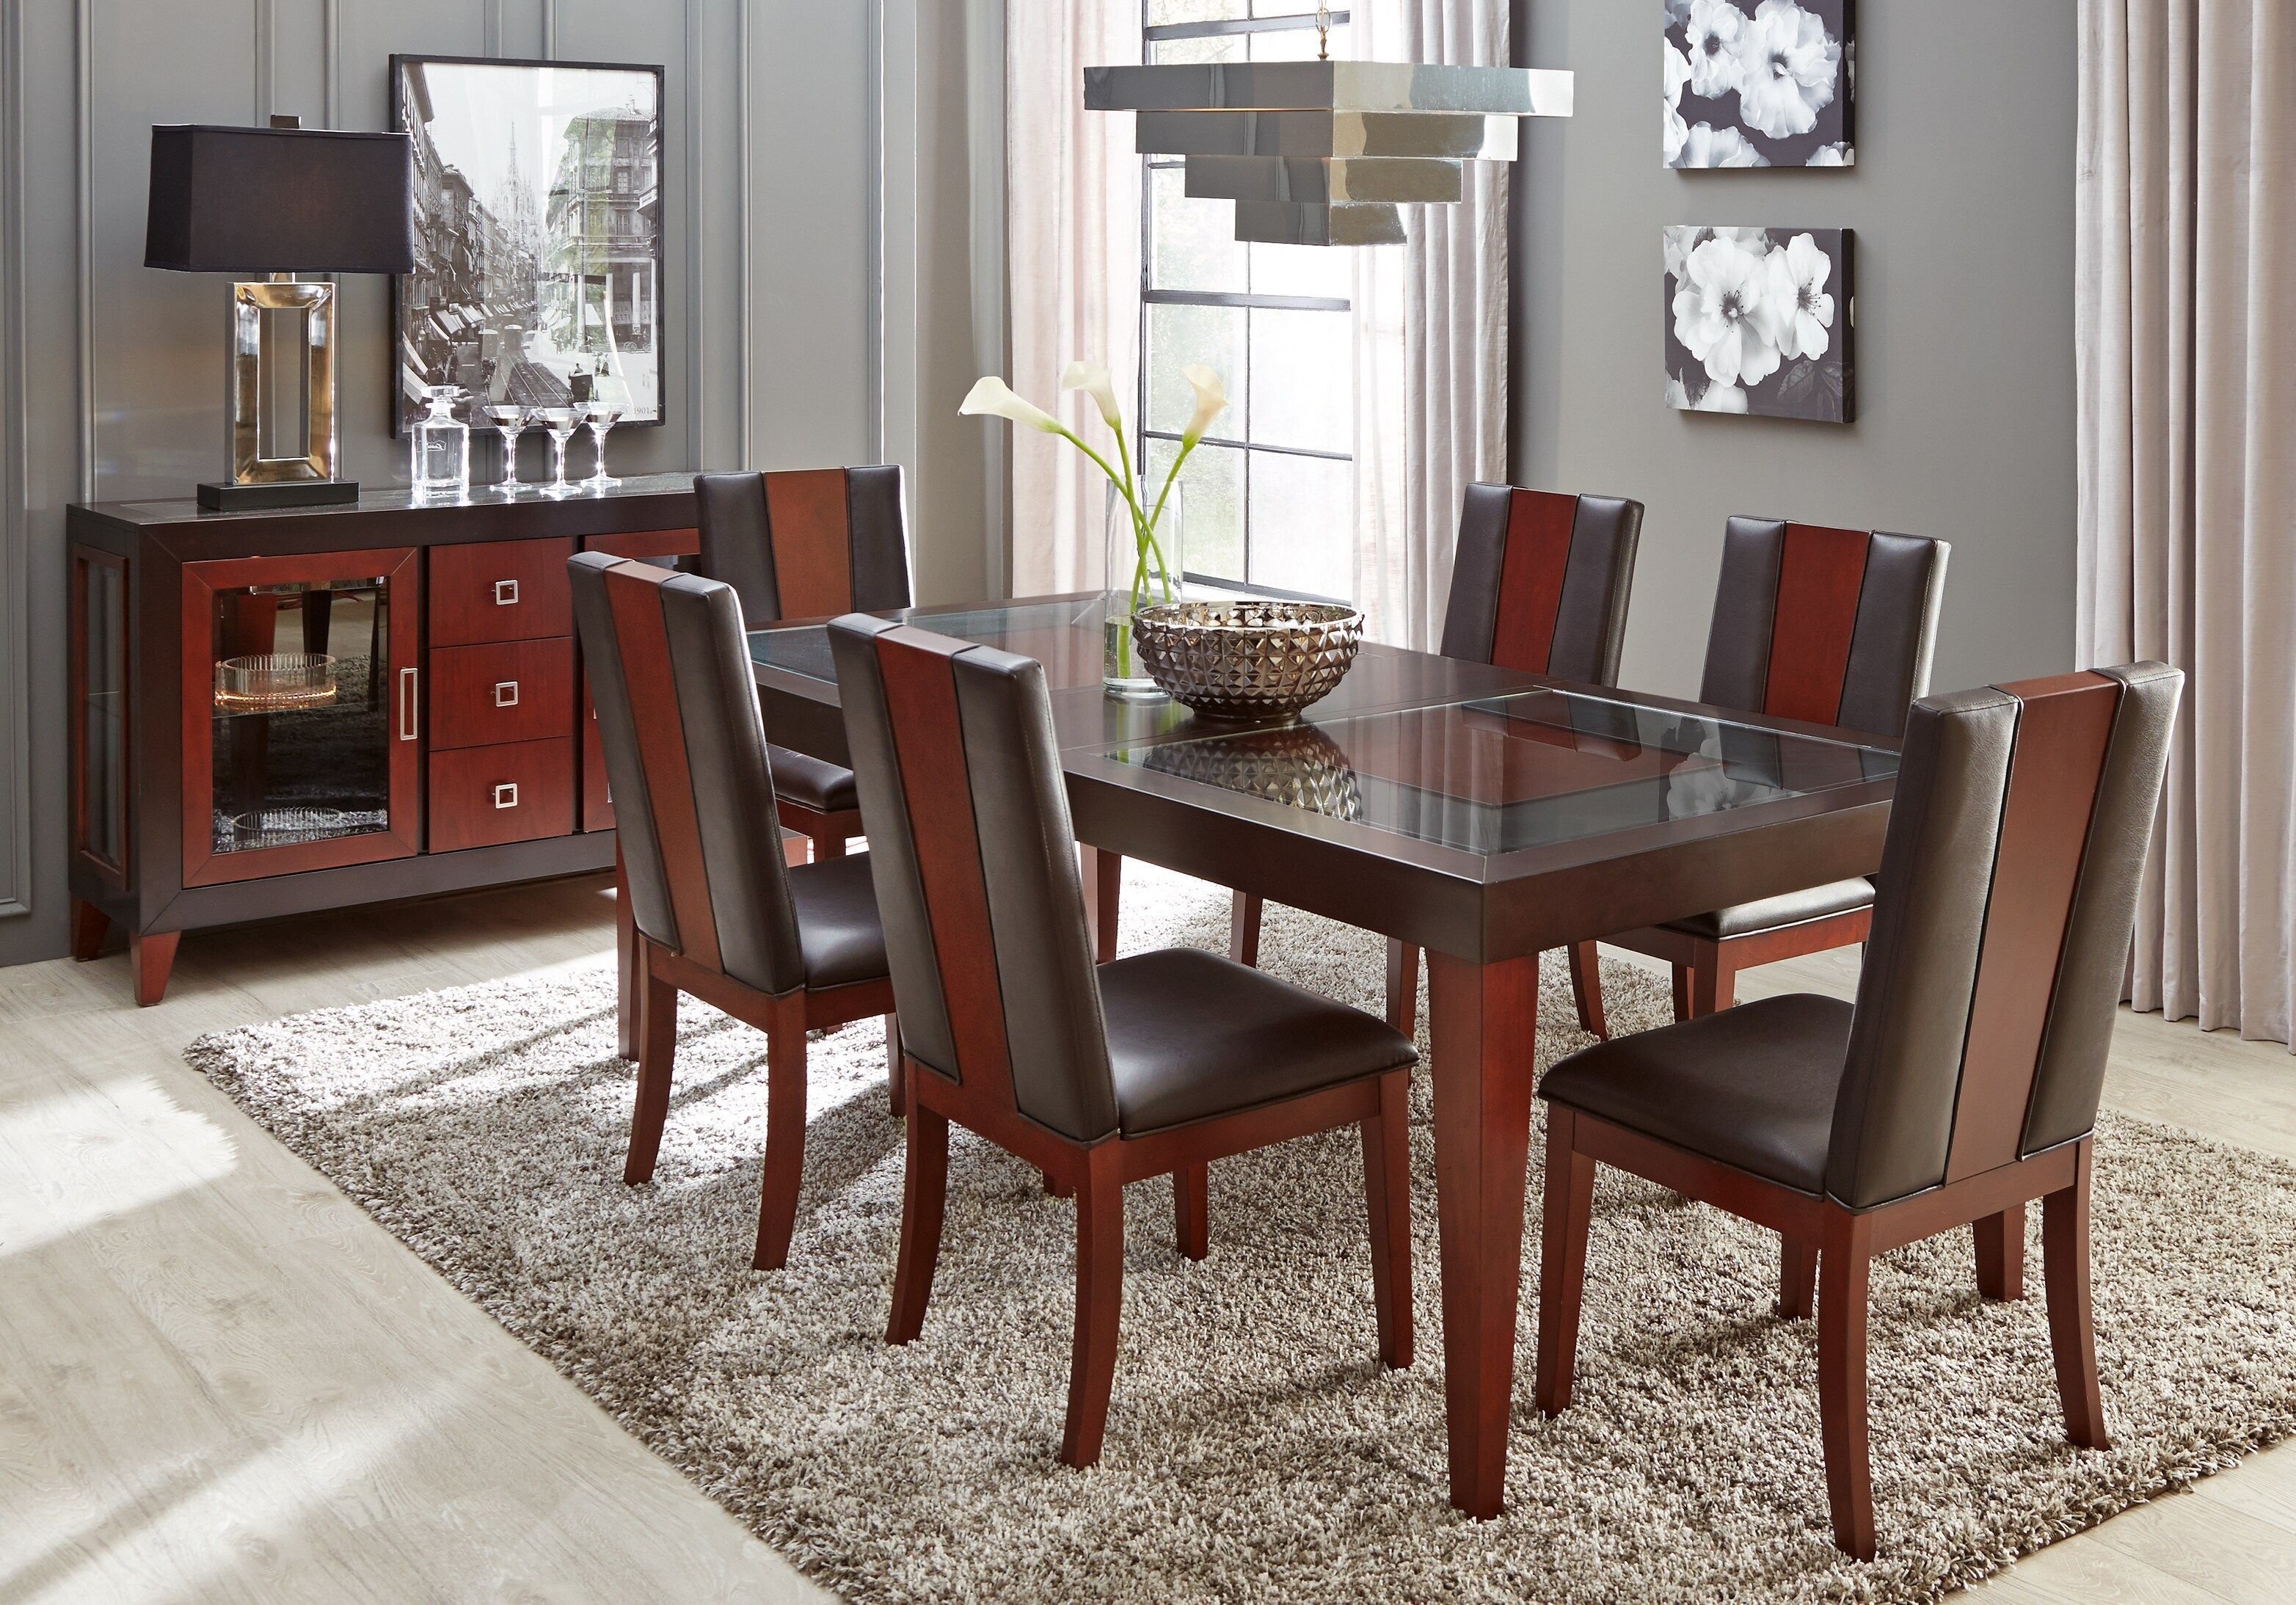 Sofia Vergara Savona Chocolate 5 Pc Rectangle Dining Room With Wood Back Chairs Dining Dining Room Sets Affordable Dining Room Sets Formal Dining Room Sets